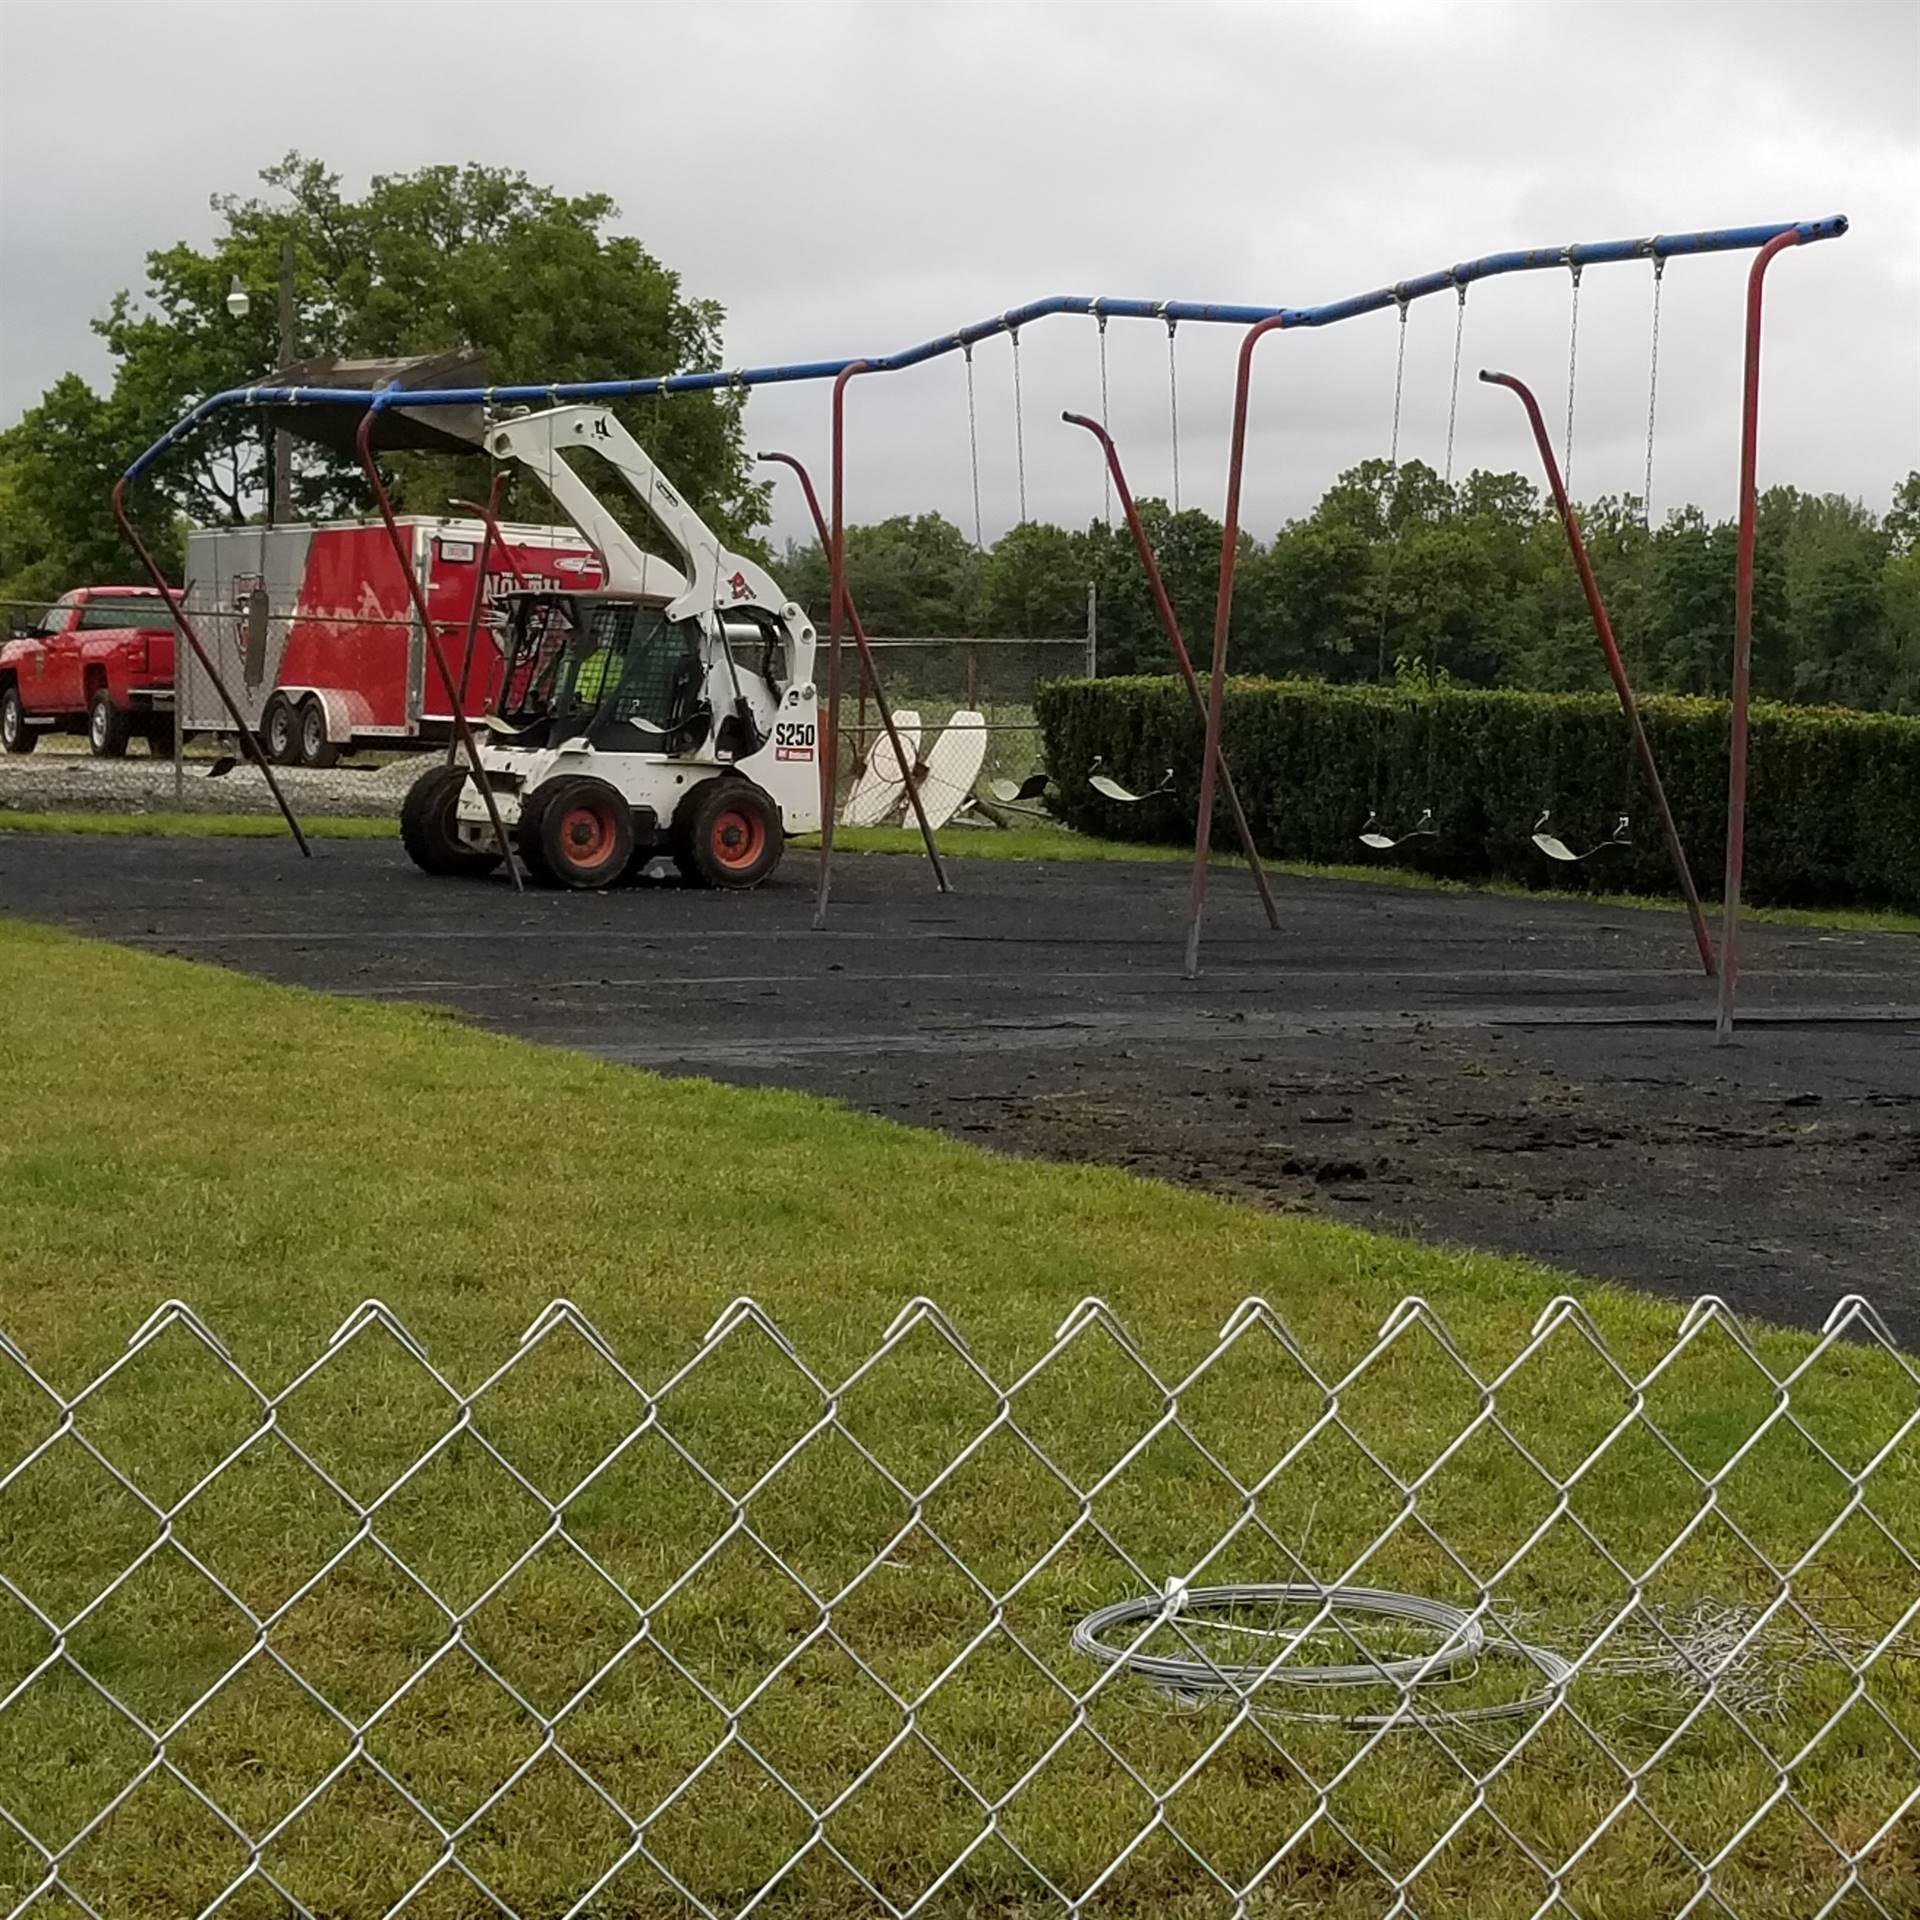 Playground Construction Begins